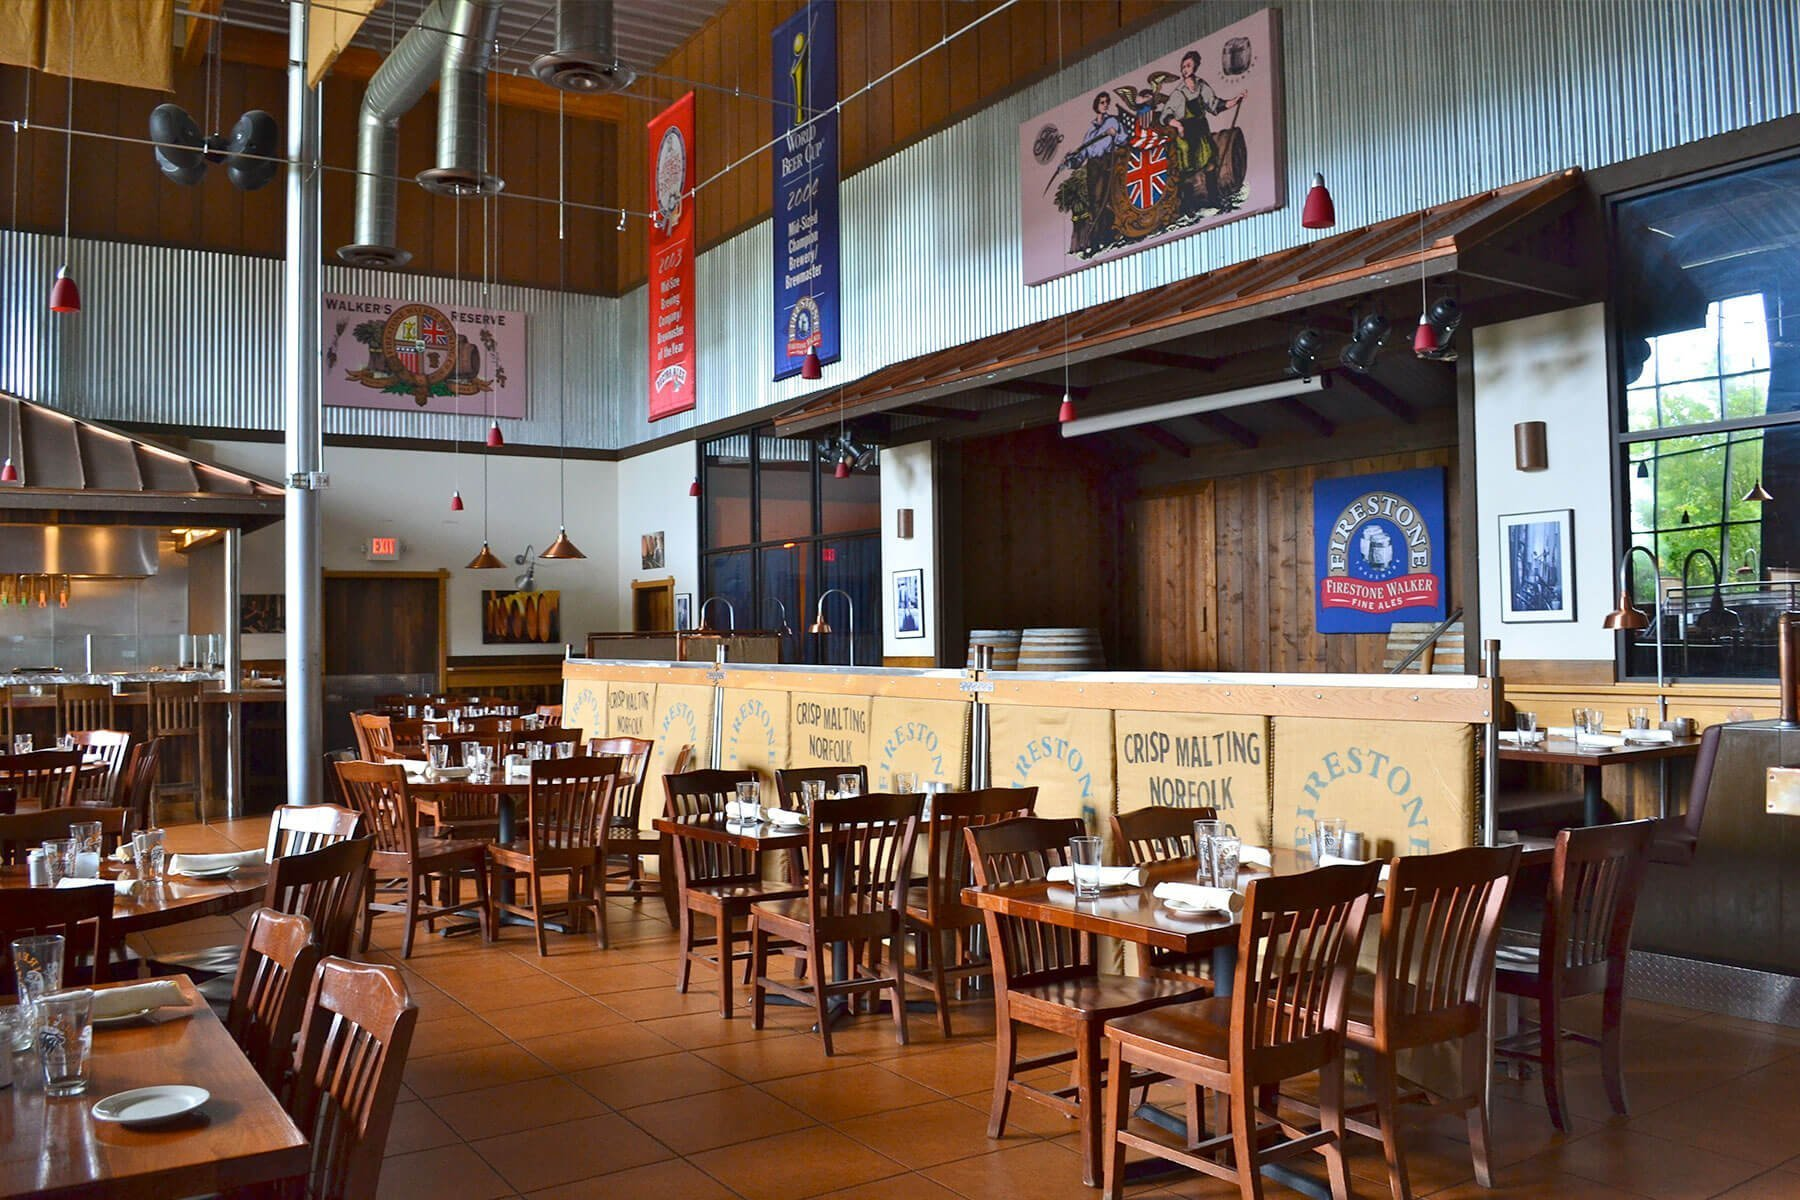 Firestone Walker Brewing Company Taproom Interior in Paso Robles, California